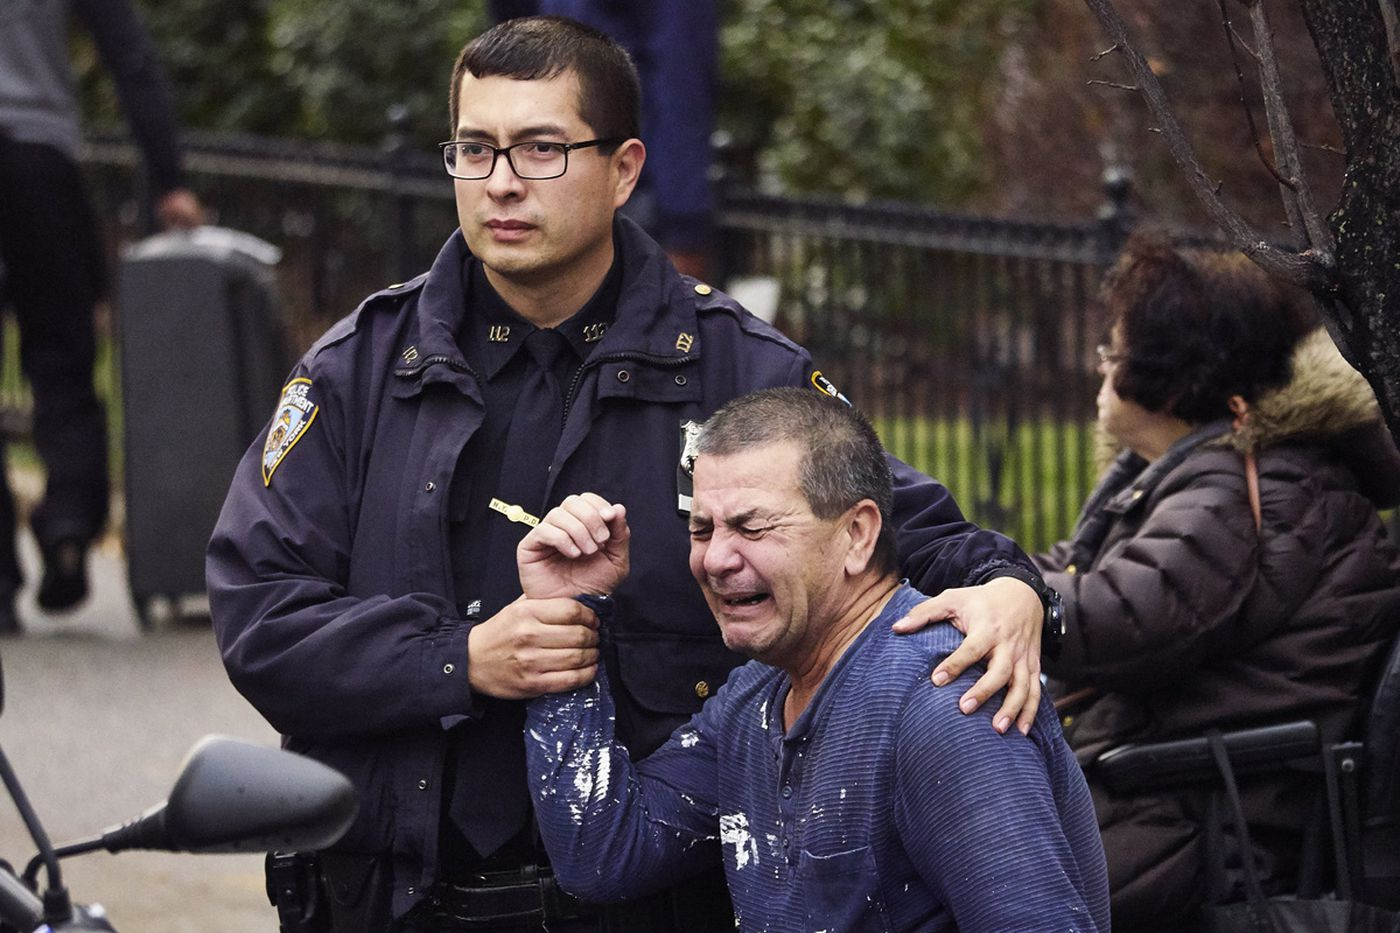 The father of a man who died after falling from a building at 62-98 Saunders St. cries out in grief in Queens.  John Davie, 26, was renovating the window when he tumbled out the top-floor apartment.